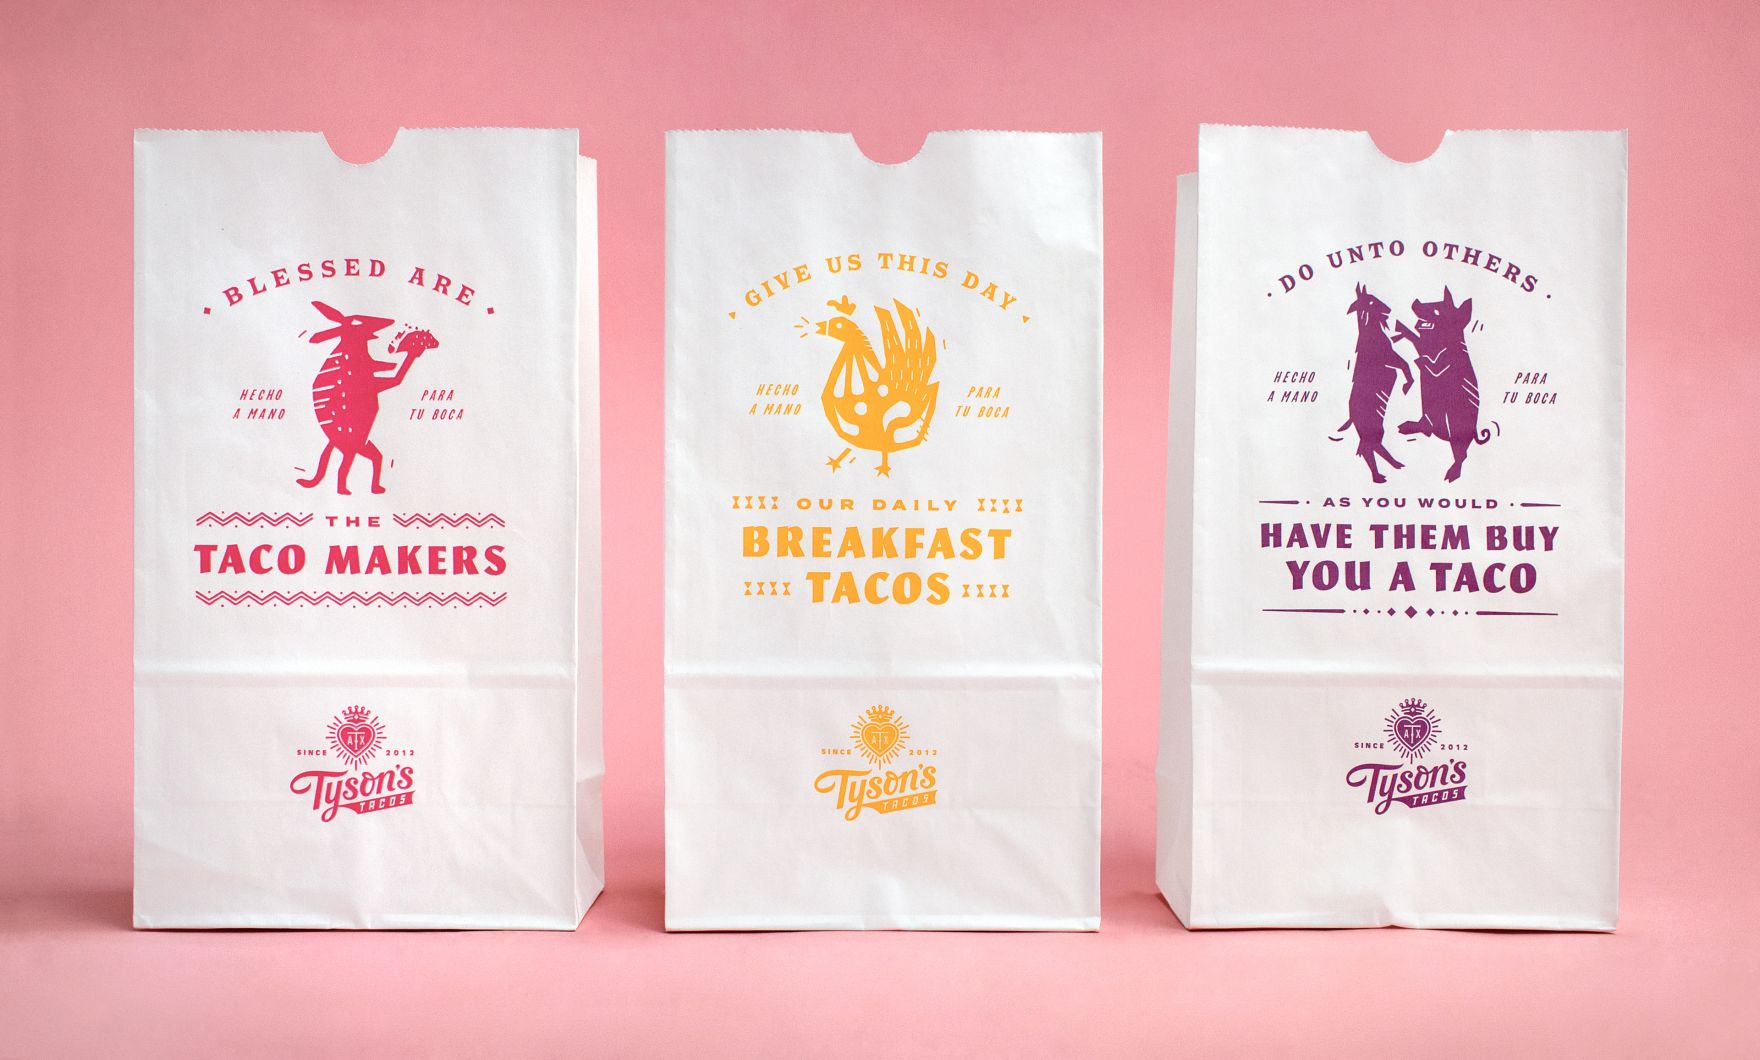 Tysons_Tacos_To-Go_Bags-01